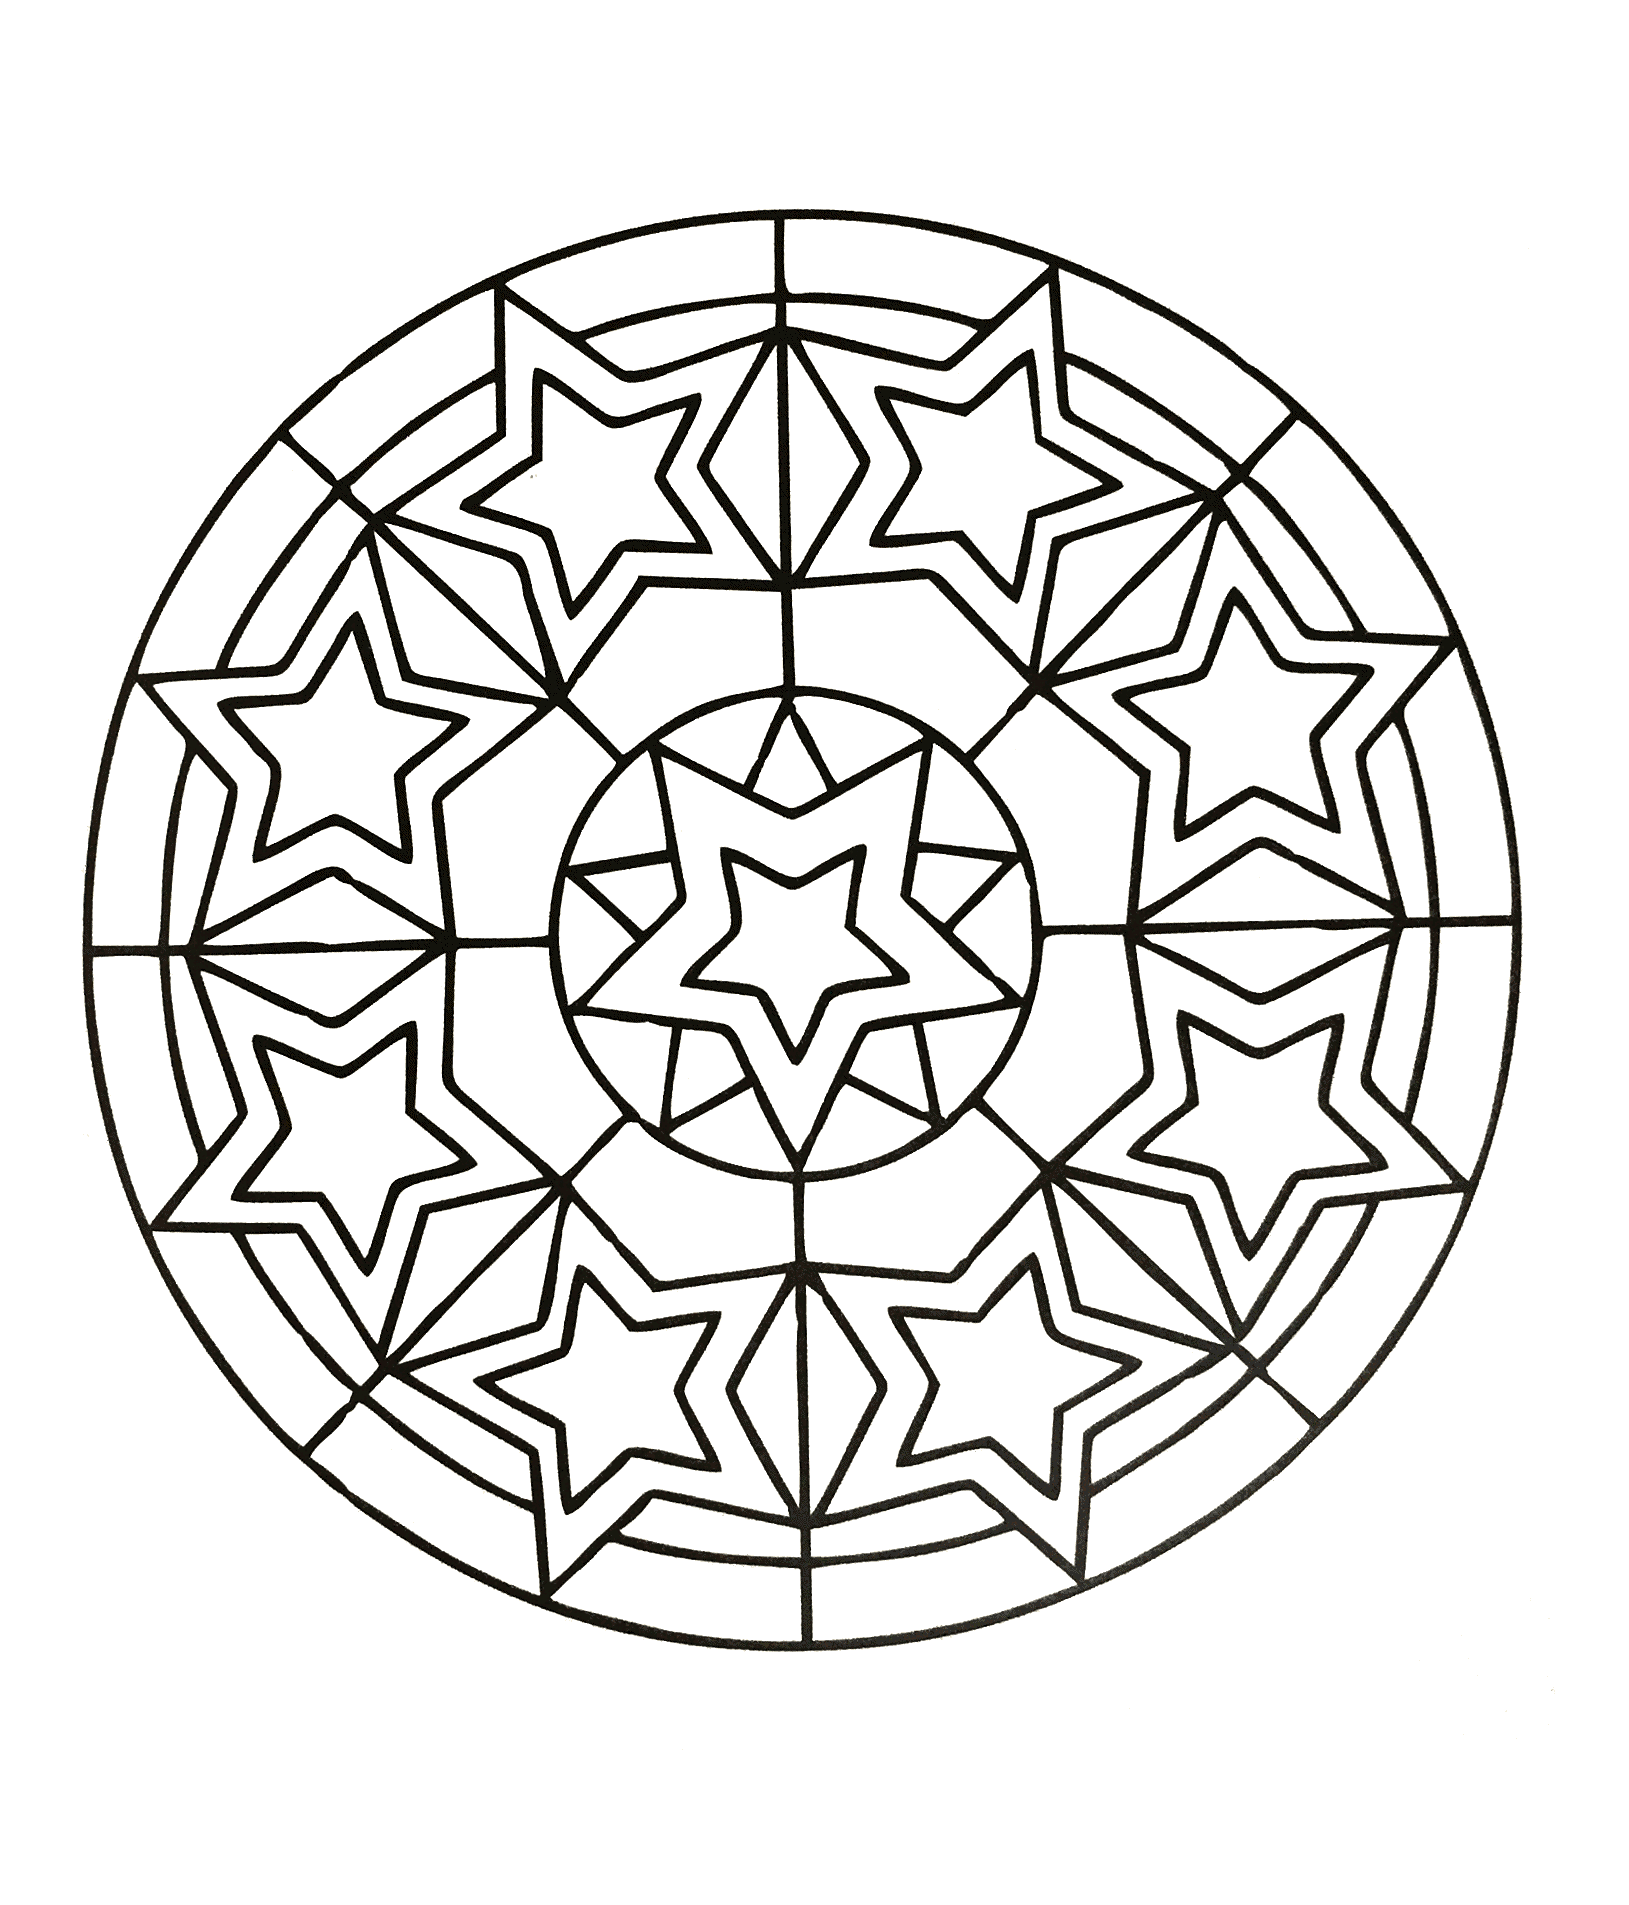 Uncategorized Free Mandalas To Print mandalas to print free 25 simple 100 zen from the gallery normal